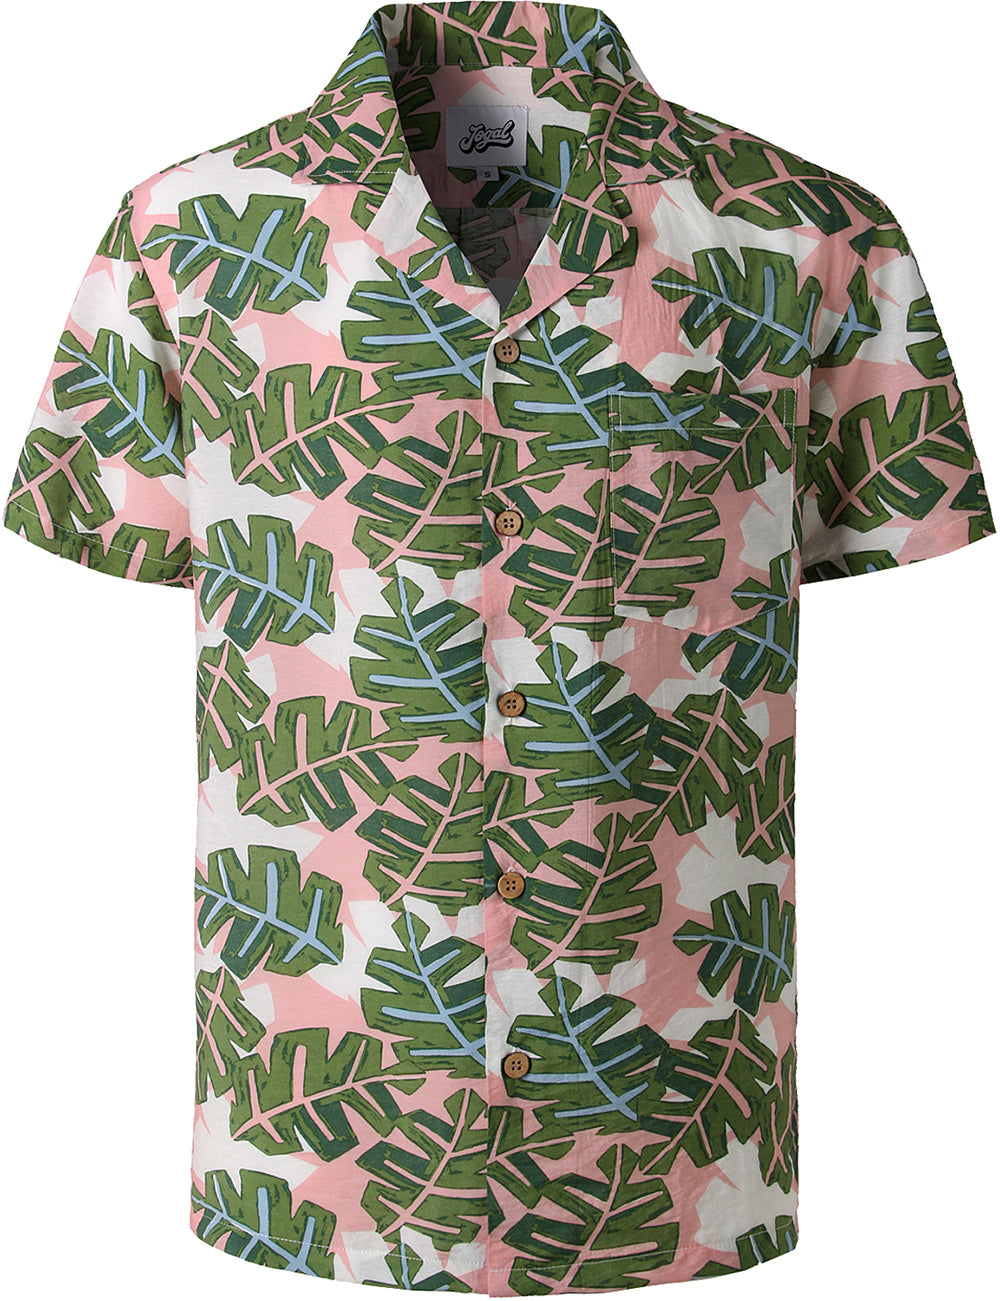 JOGAL Mens Hawaiian Shirt Short Sleeve Palms Shirt STAG Beach Holiday Casual (Leaf)